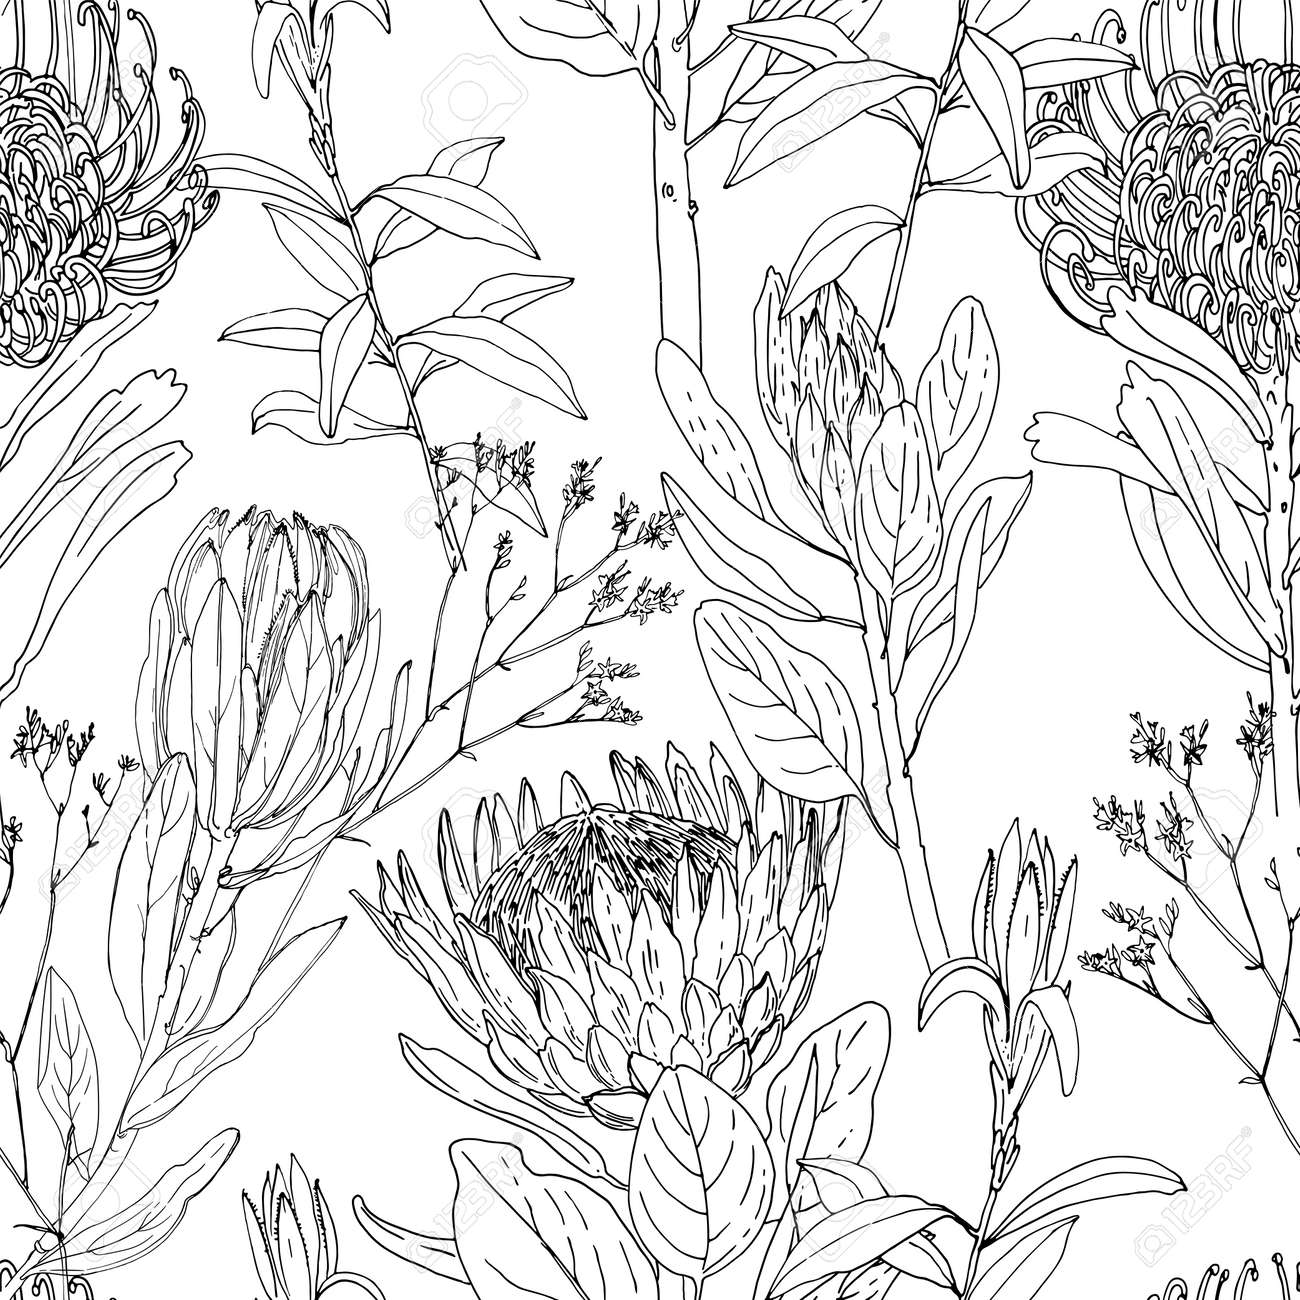 Flower pattern Vector sketch of flowers by line on a white background. - 169914264